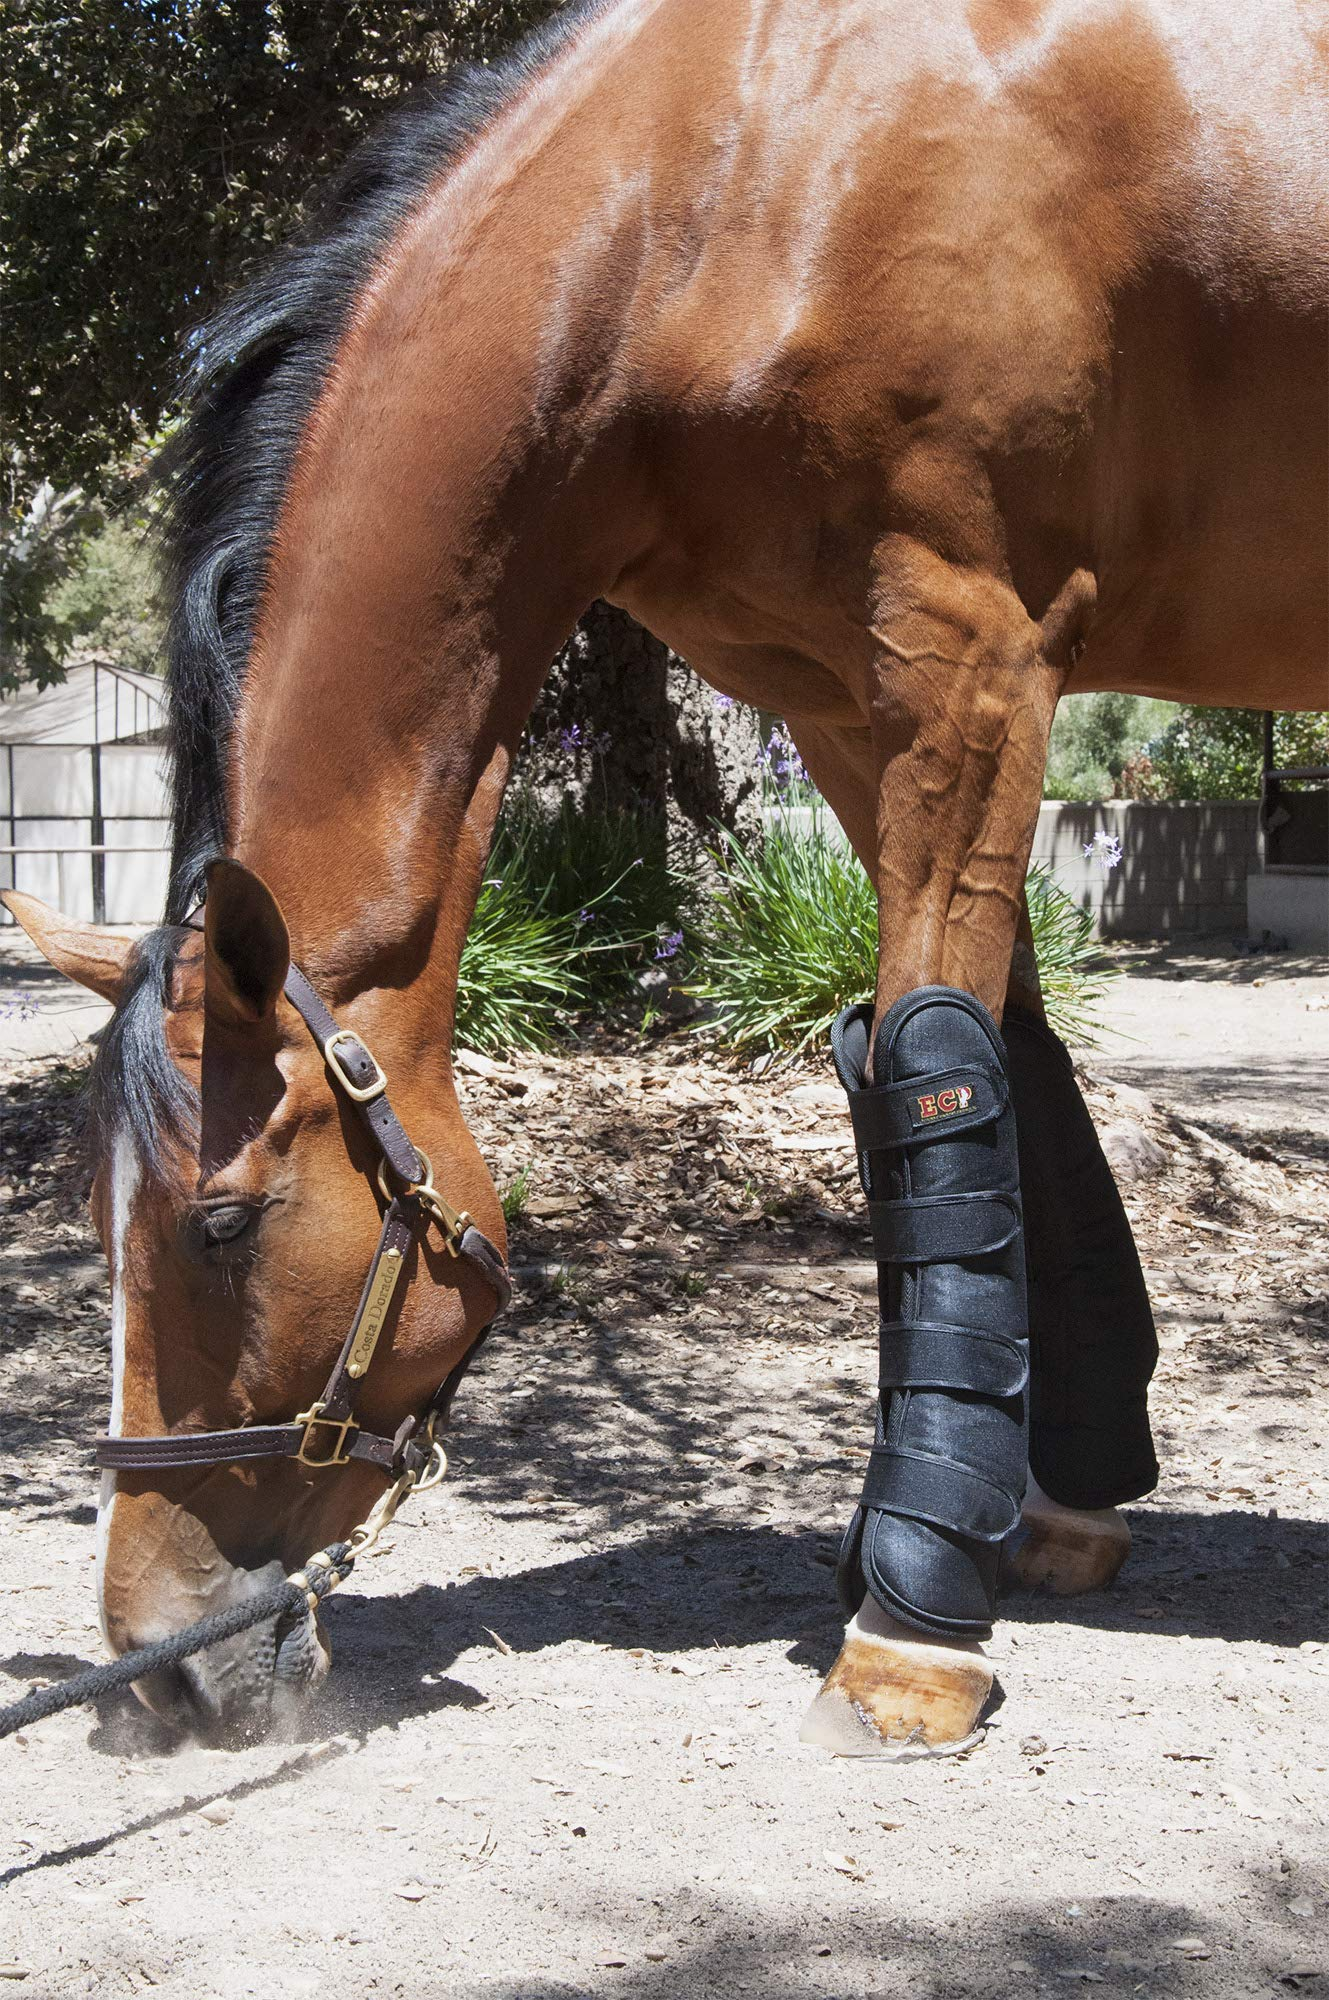 ECP Equine Comfort Products Far Infrared Heat Therapy Horse Front Leg Wraps - Large by ECP Equine Comfort Products (Image #6)